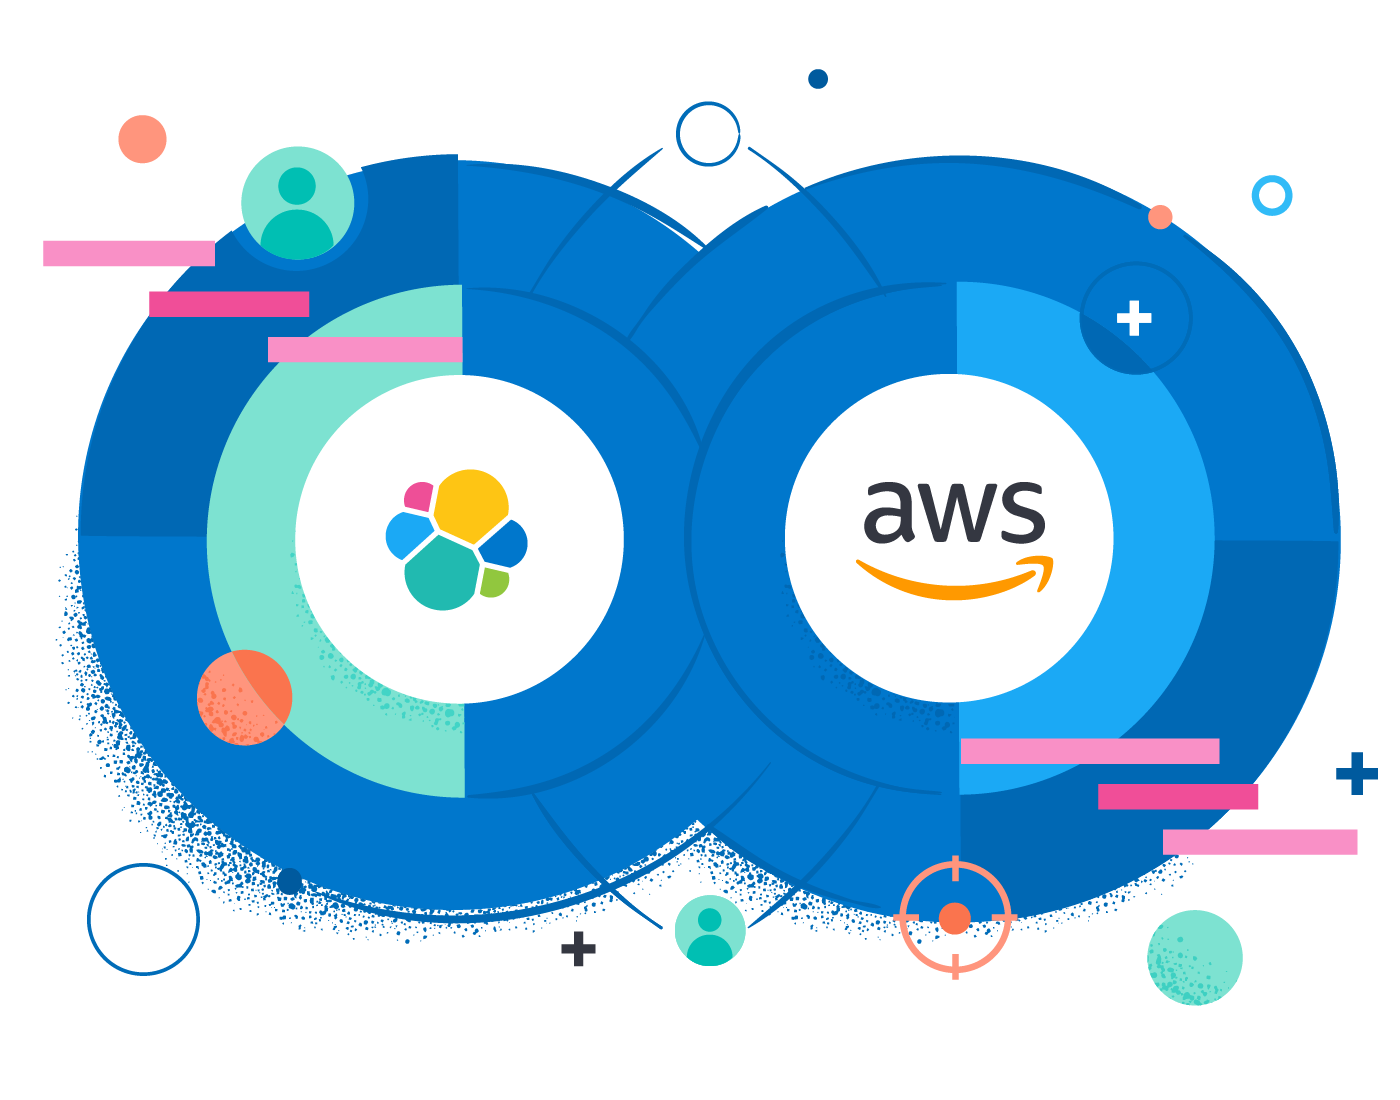 illustration-partners-aws-1400x1100.png